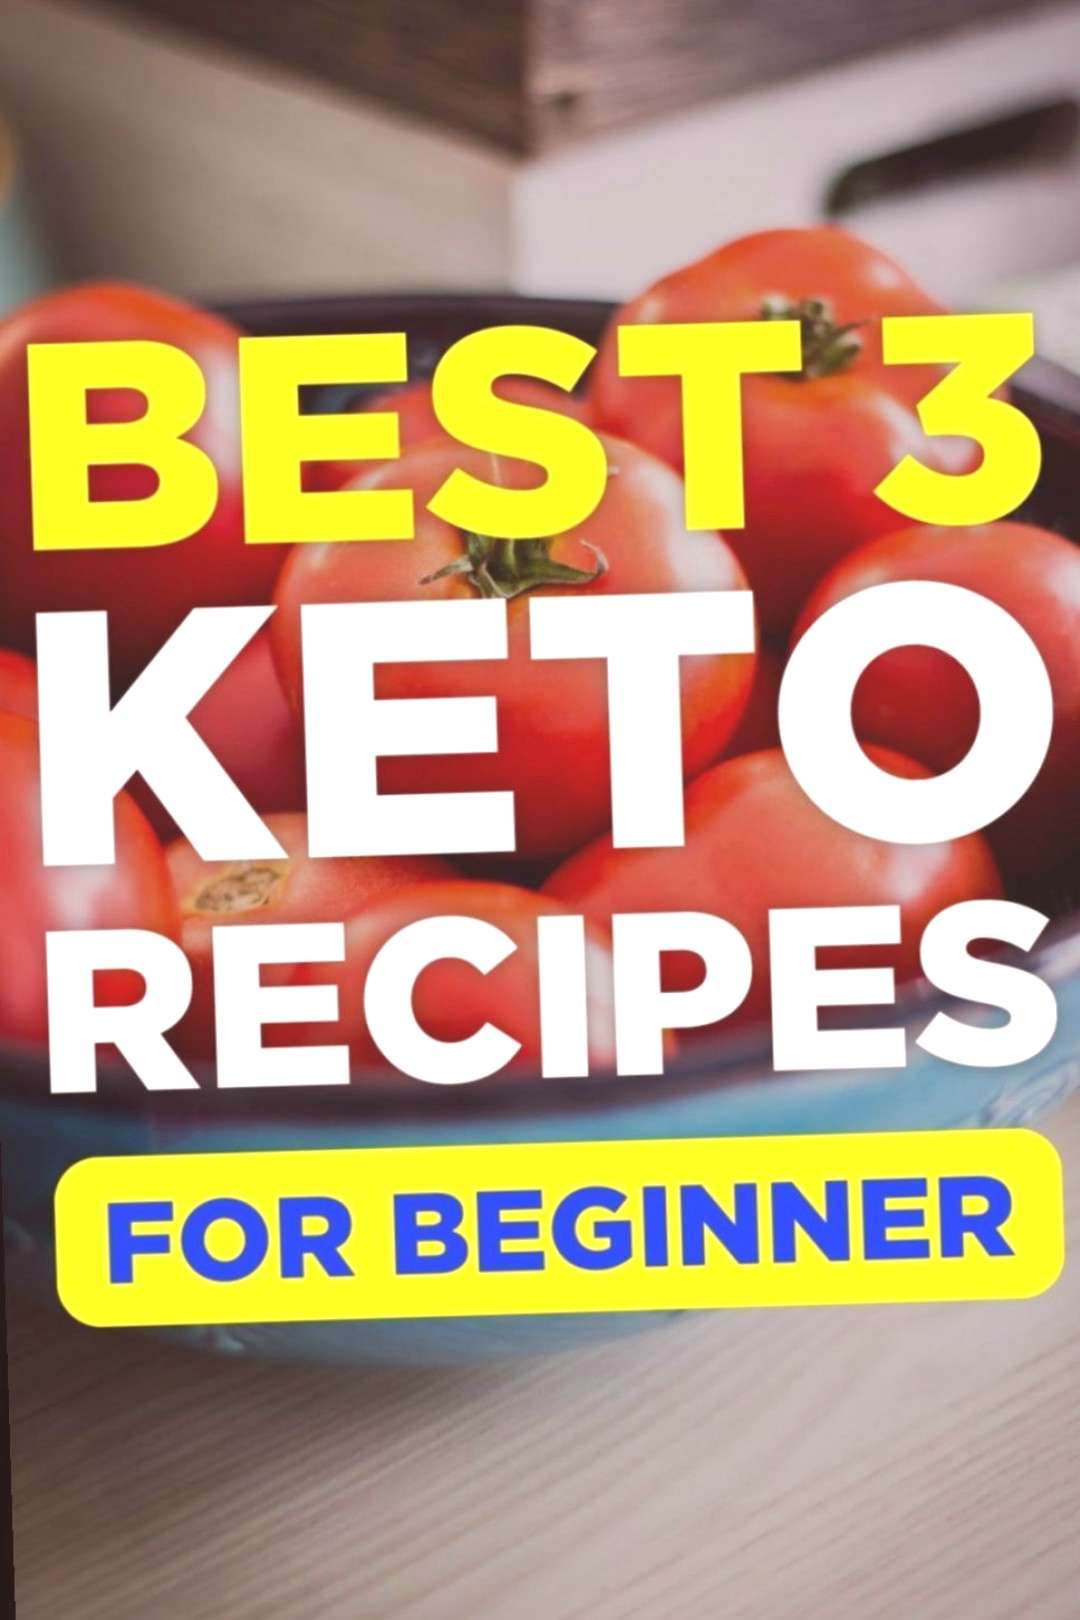 11 Healthy Diet Recipes For Teens    11 Hea... healthy recipes healthy recipes recipes beef r